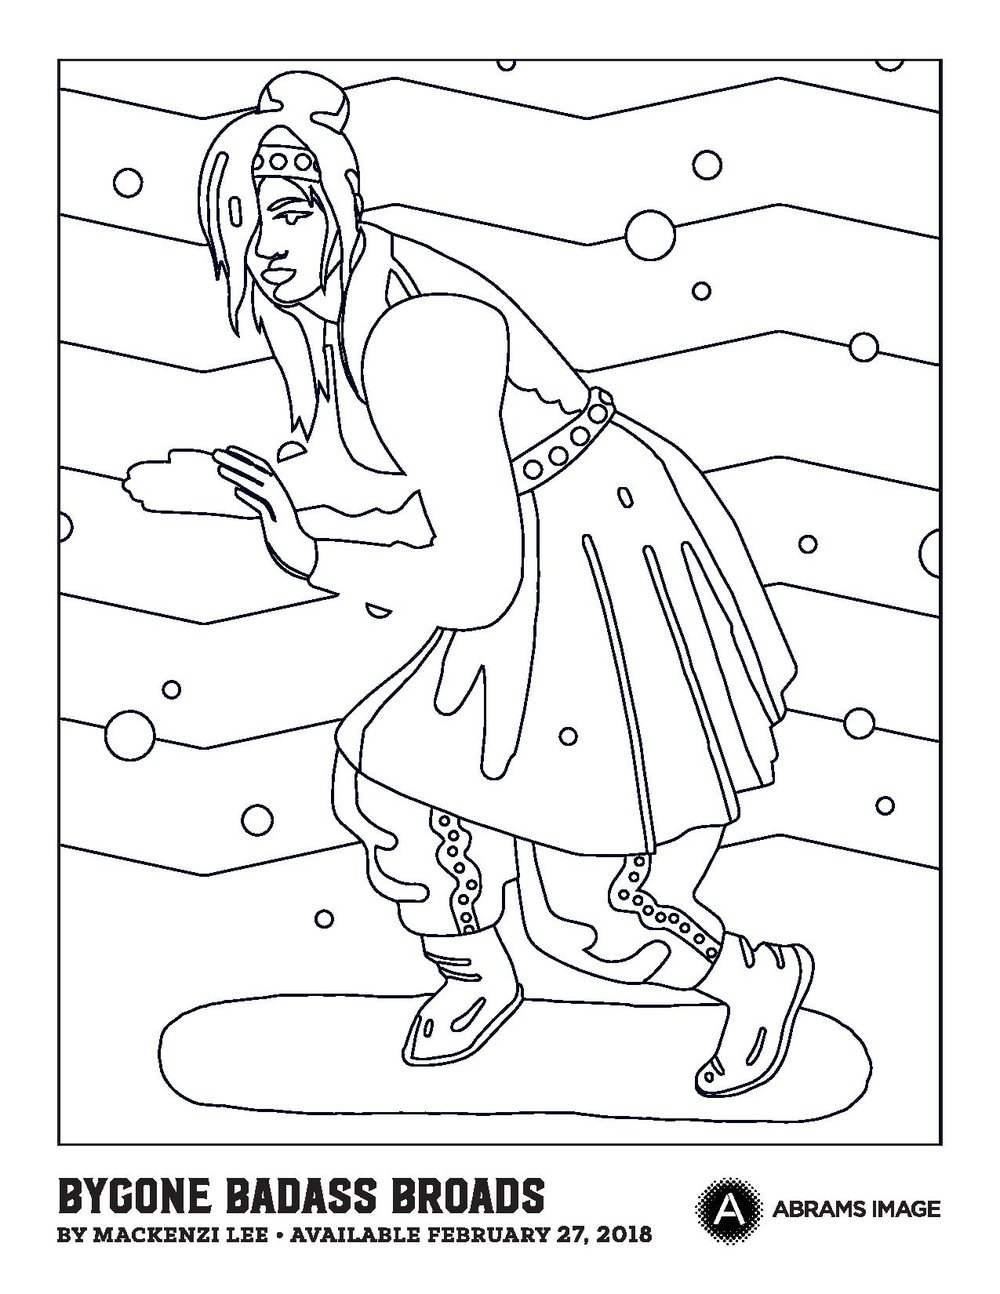 Coloring Pages! - Based on the art by Petra Eriksson